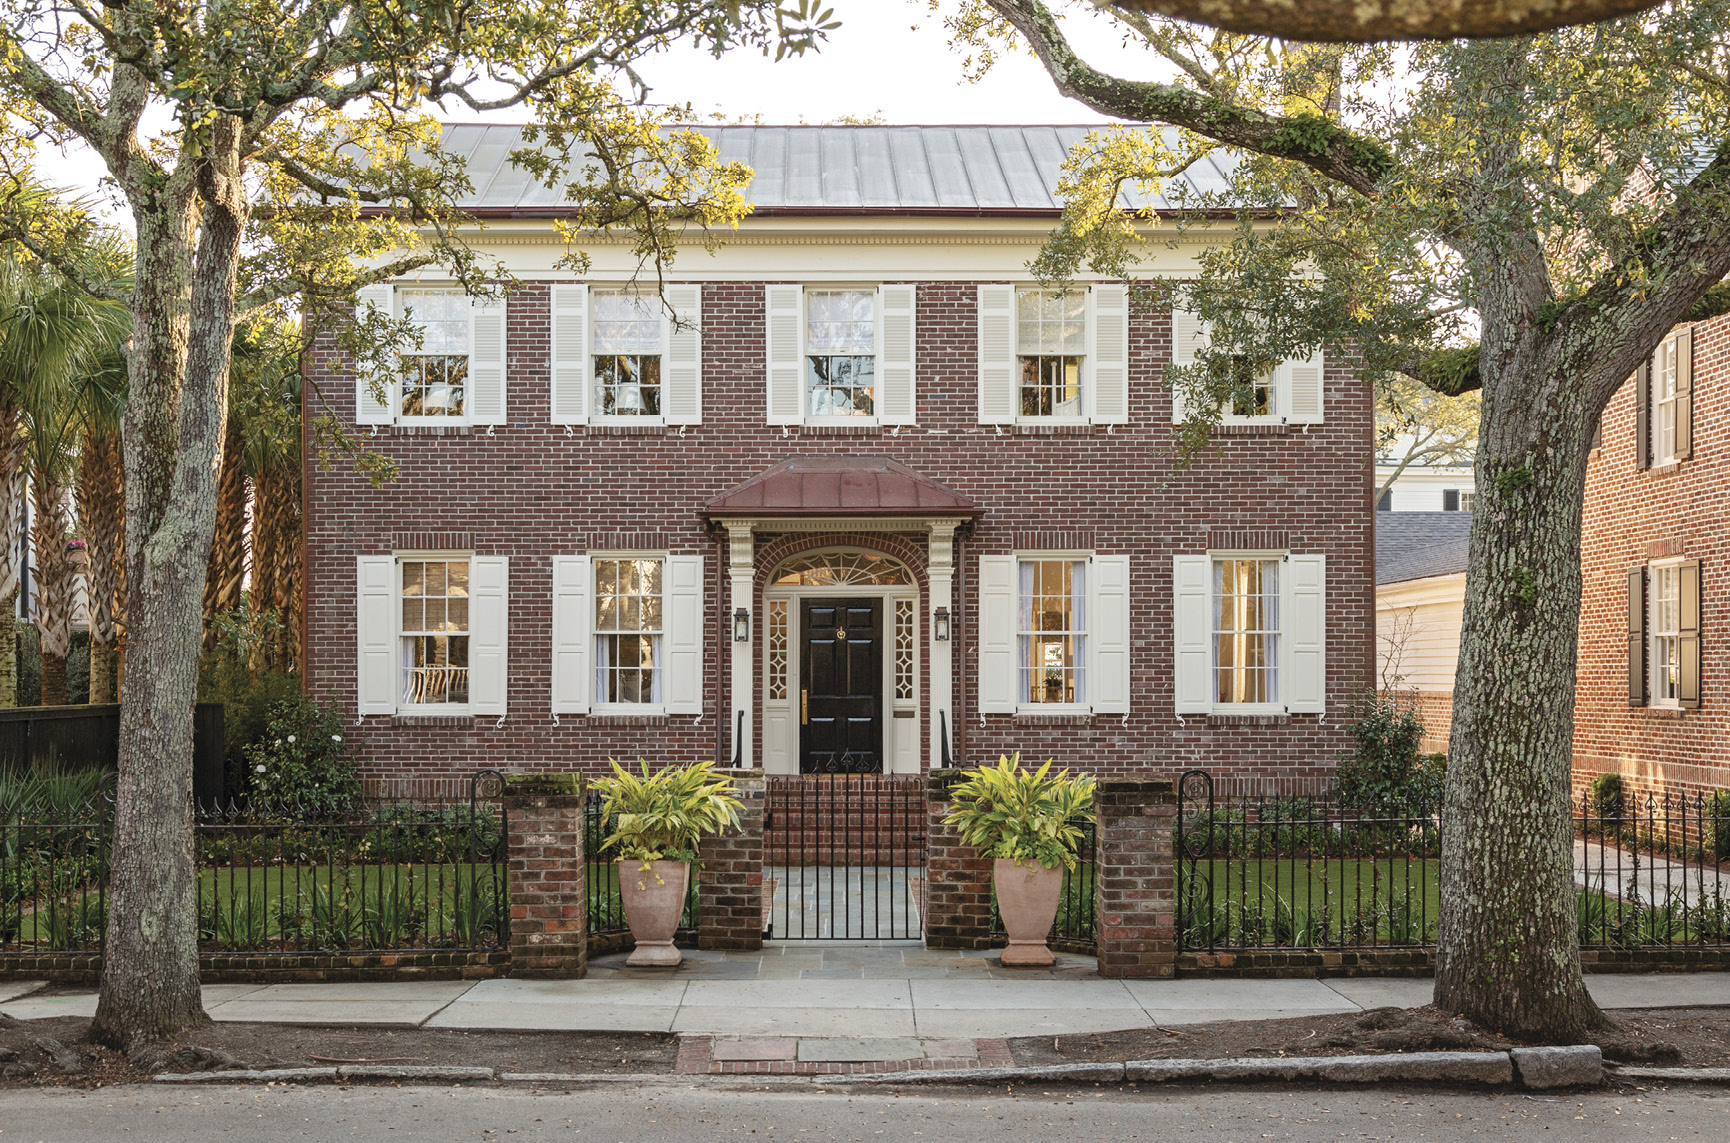 "HIP TO BE SQUARE: Working with an architect, a builder, and an interior designer, Cate and Hugh Leatherman updated a boxy brick Colonial-style house South of Broad to suit their brood.   ""I love how neighborhoody it feels here,"" says Cate, who grew up around the corner. ""It has a family vibe."""